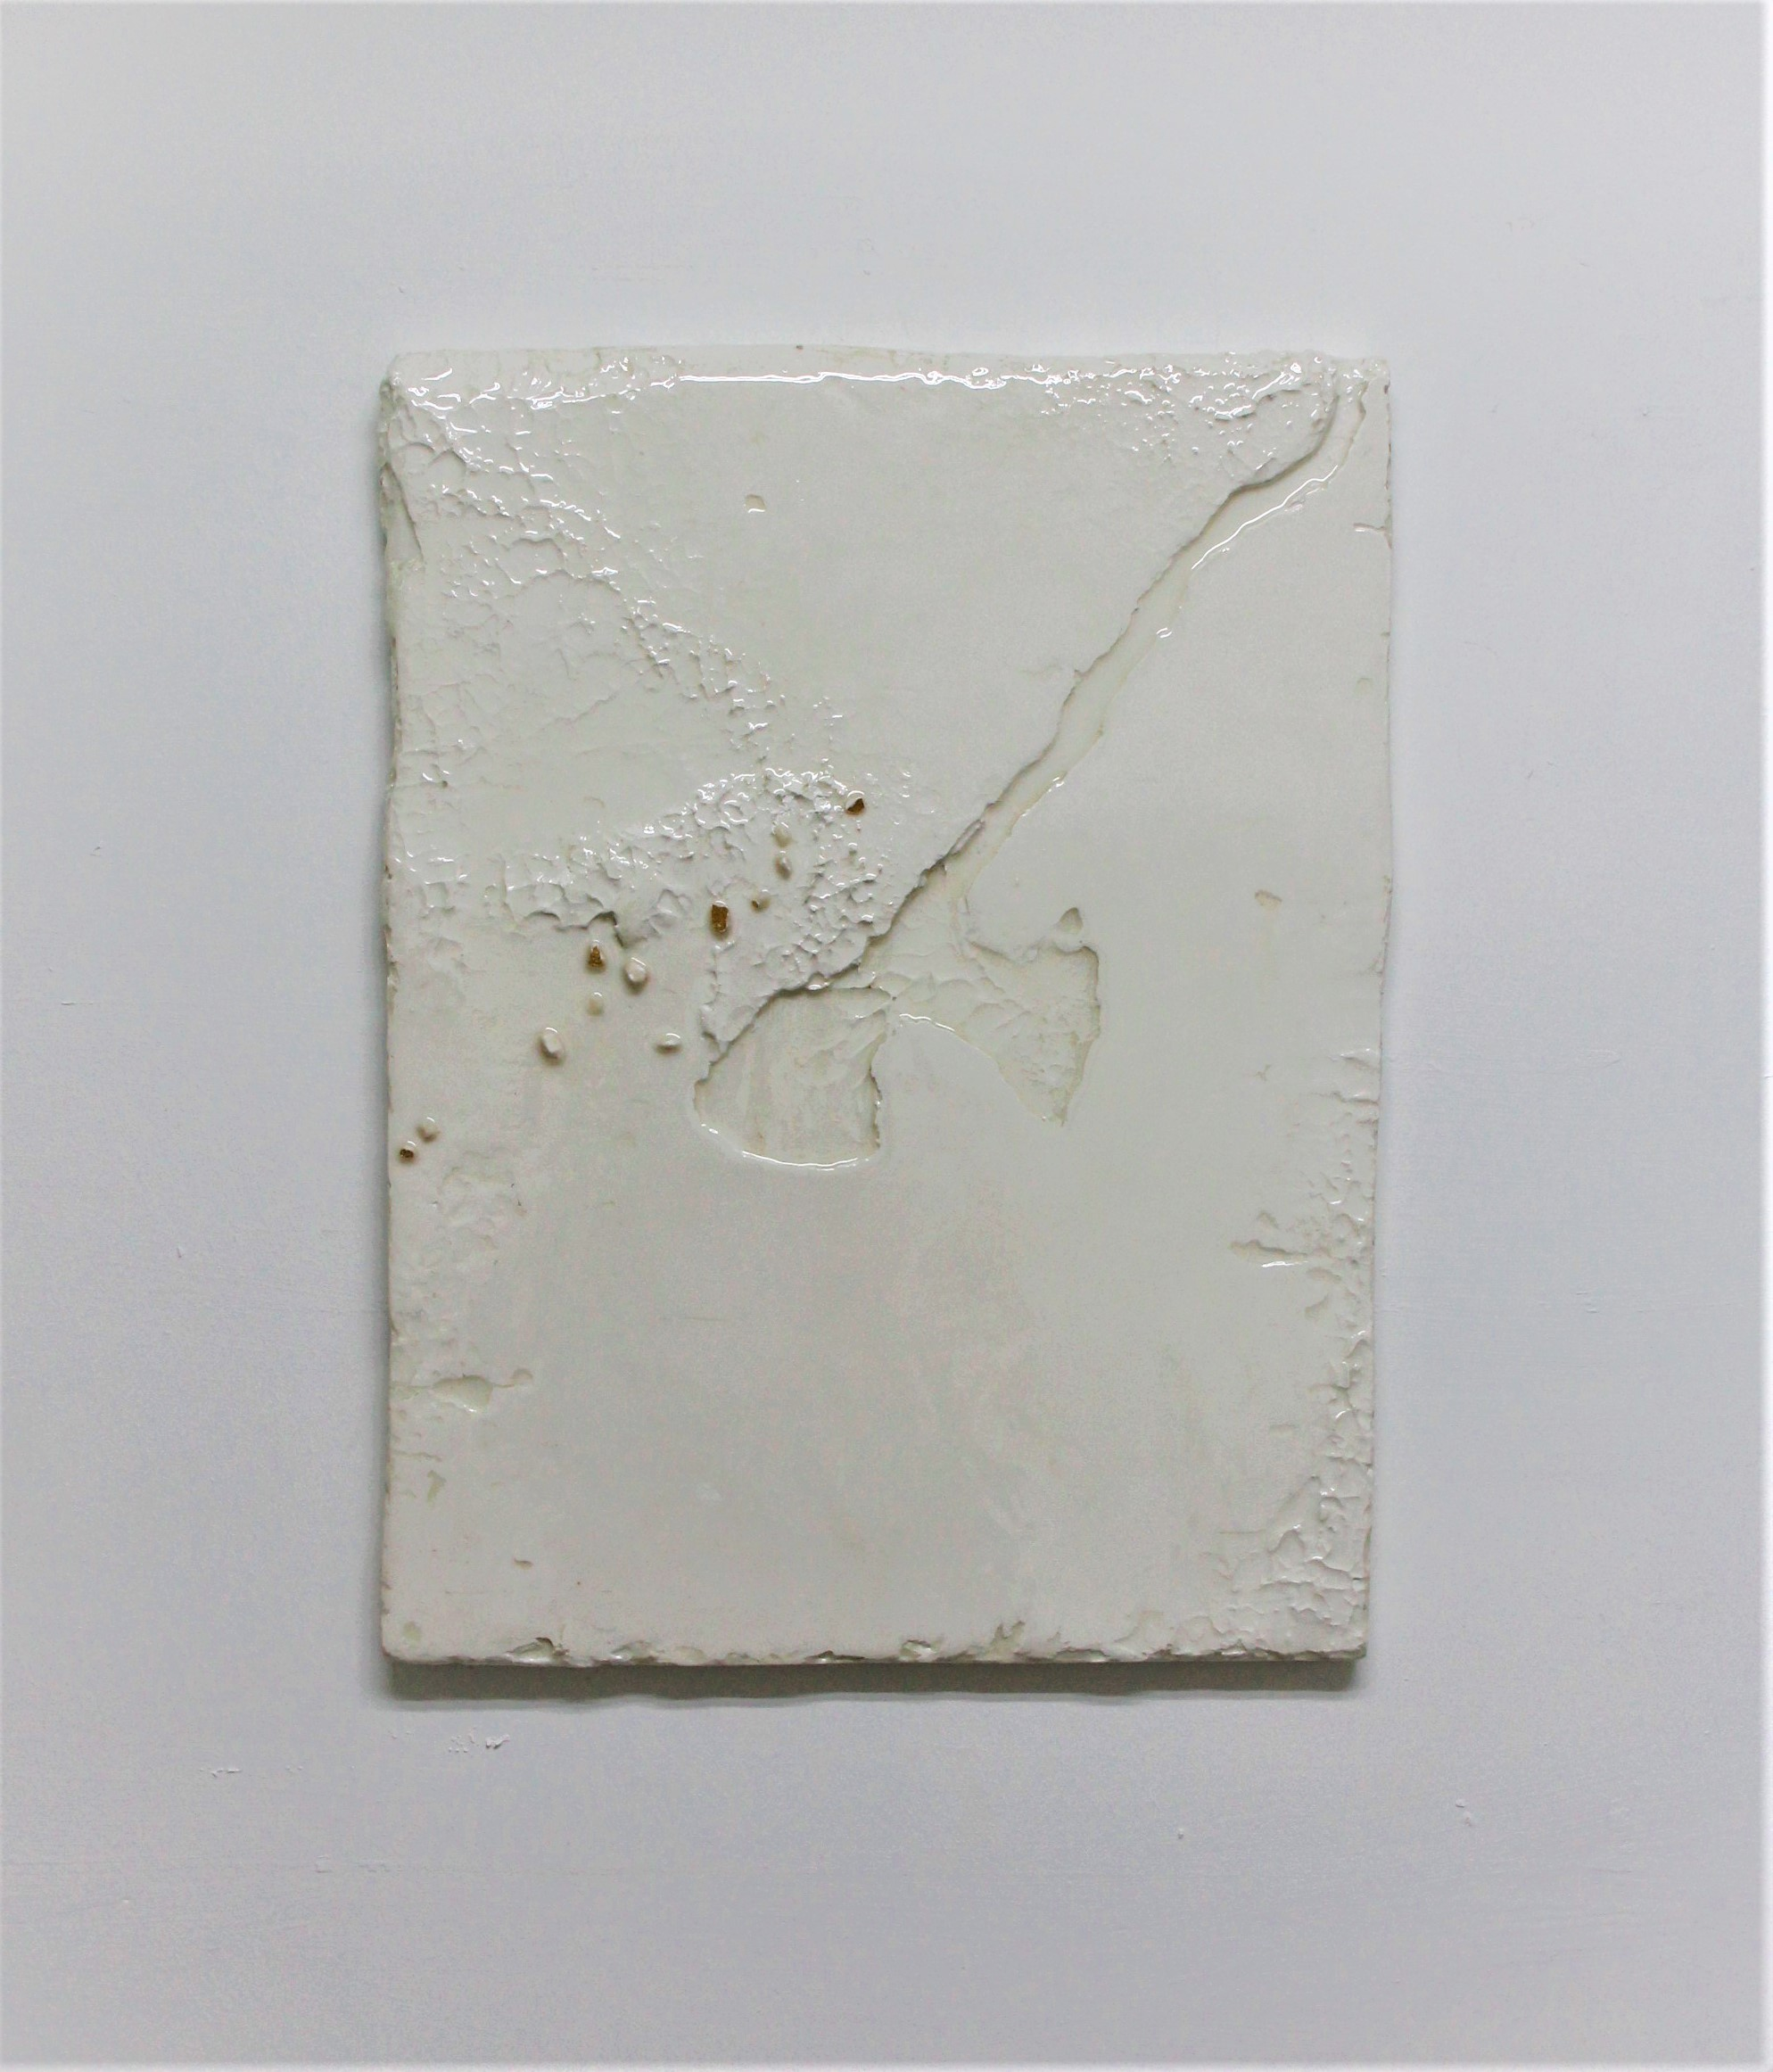 Appendix 4, 2019, Resinated Gypsum Plaster and Gold Leaf on Wood, 60 x 46 cm.jpg